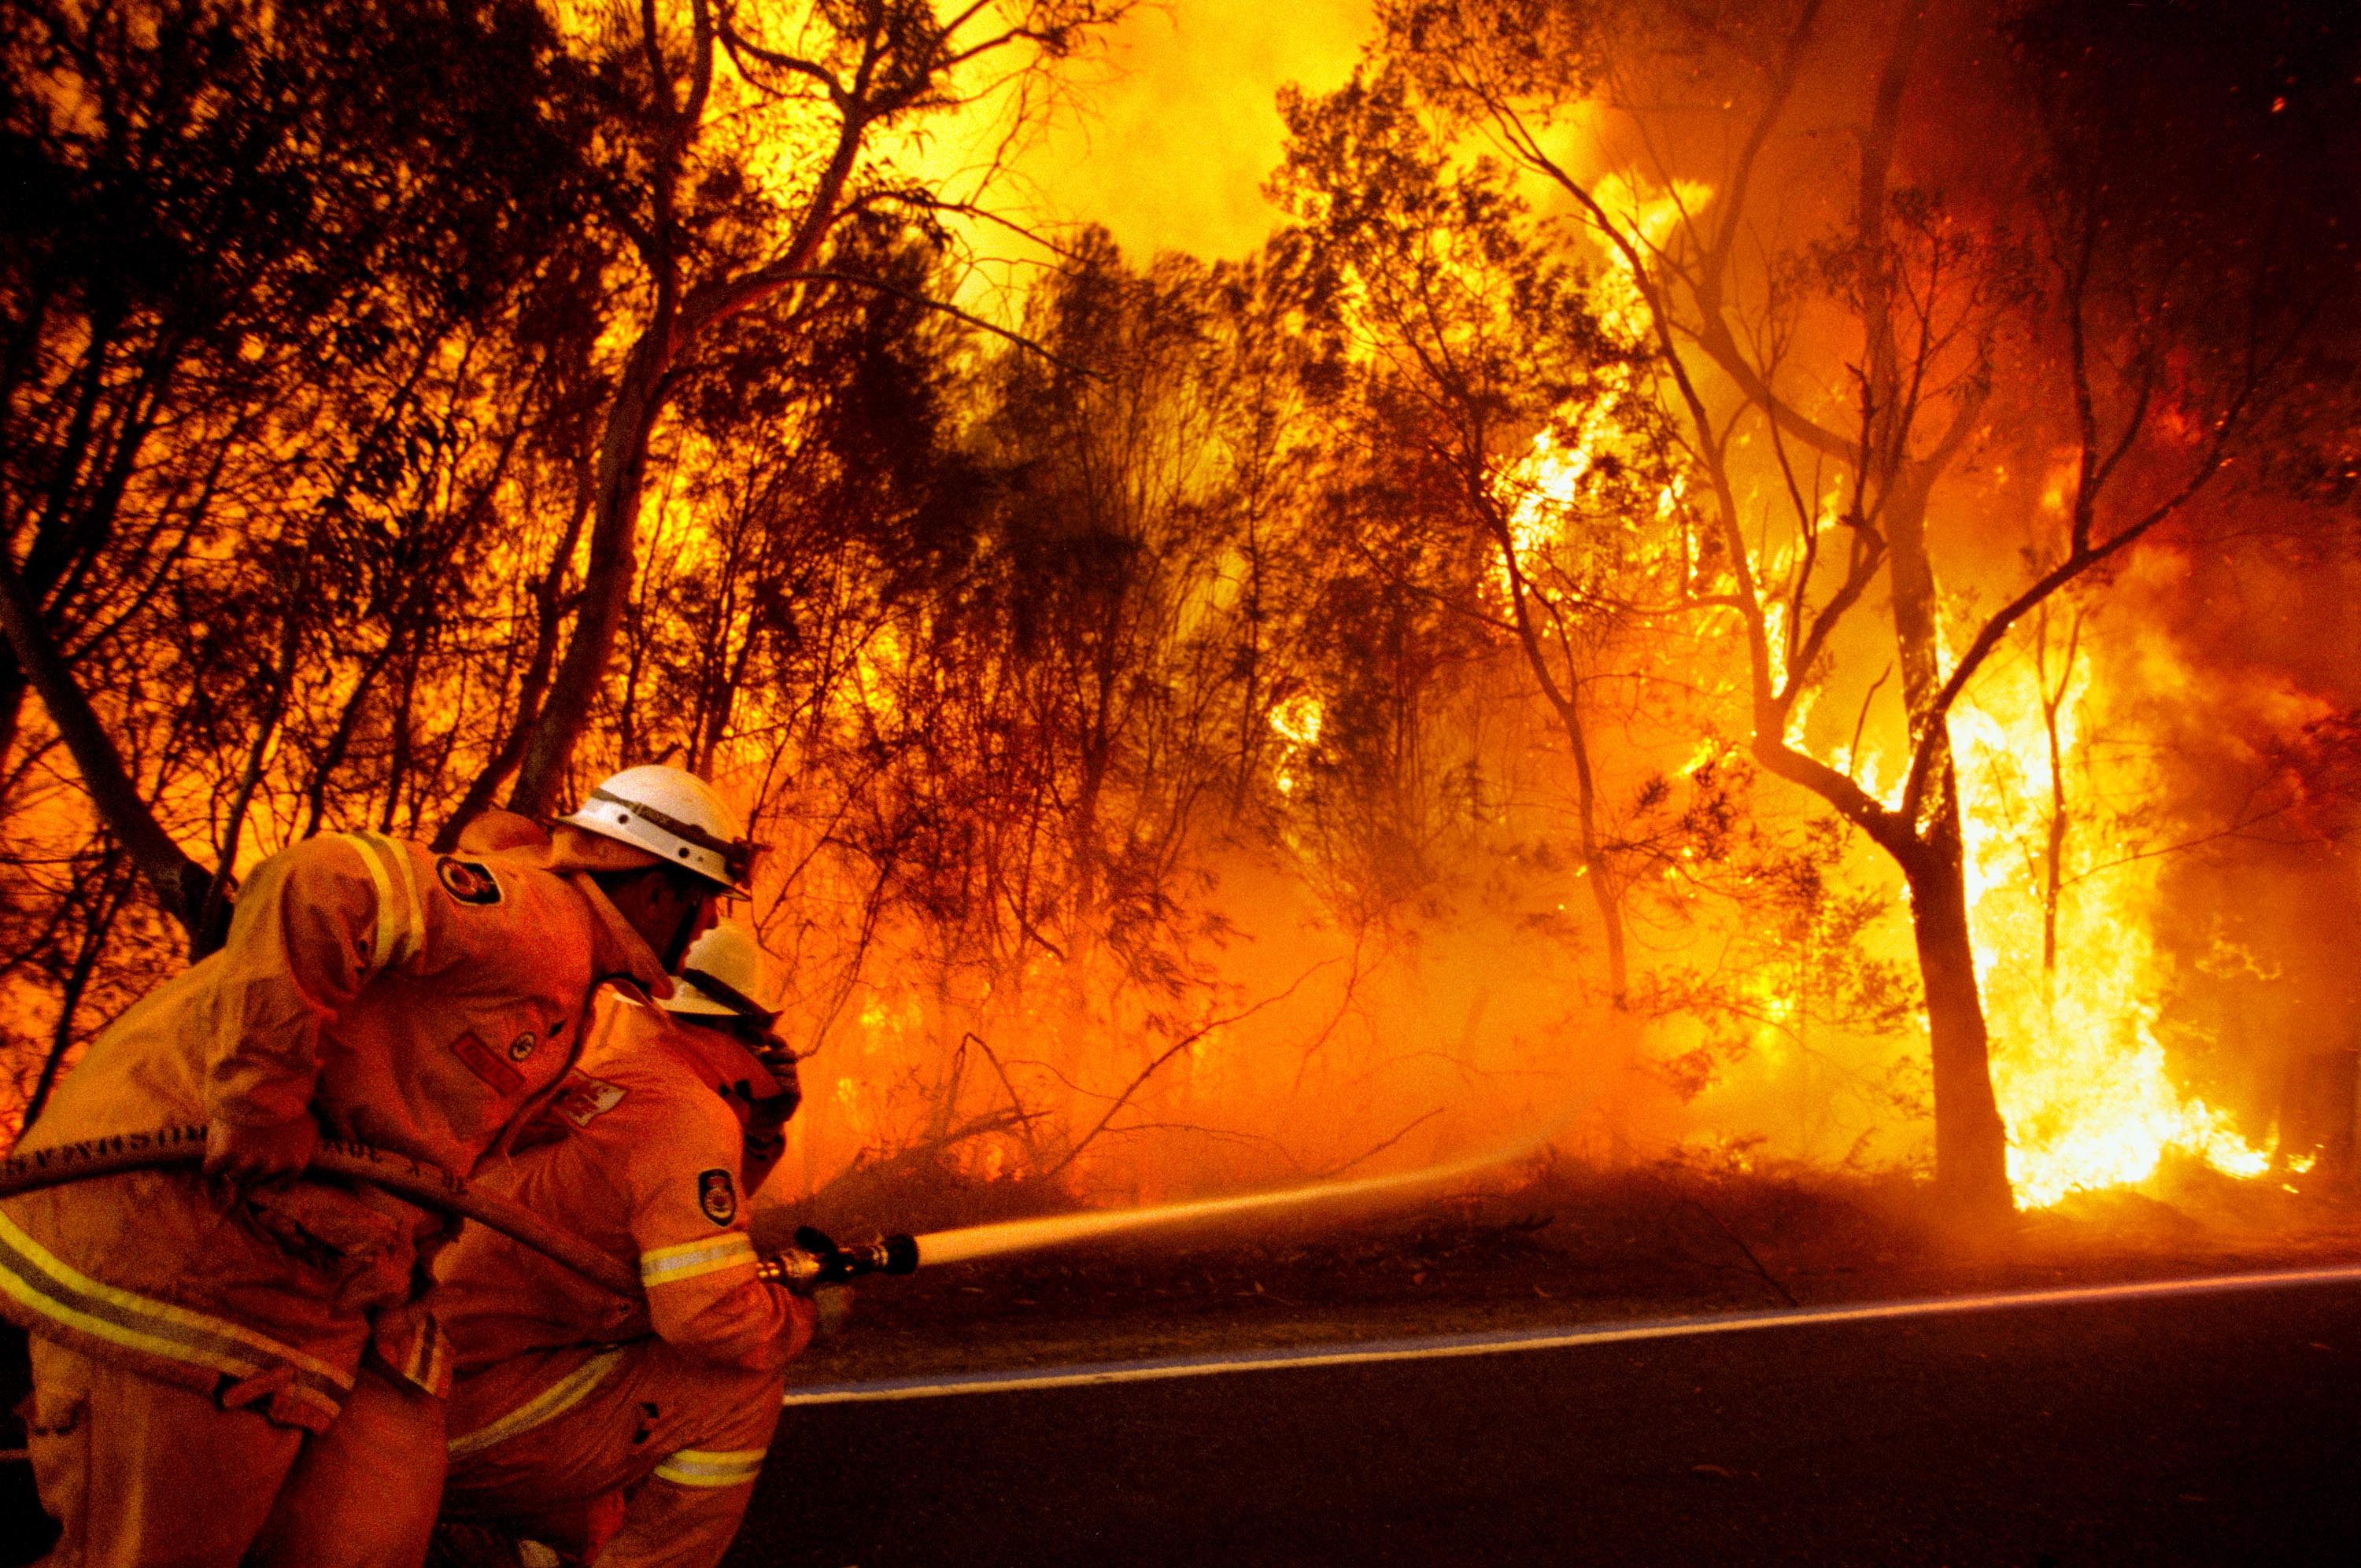 victorian bushfire black saturday 7, 2009, a day later dubbed black saturday on february 7, victorians were told  to brace for a record heat wave—with temperatures soaring to 1155 °f (464.